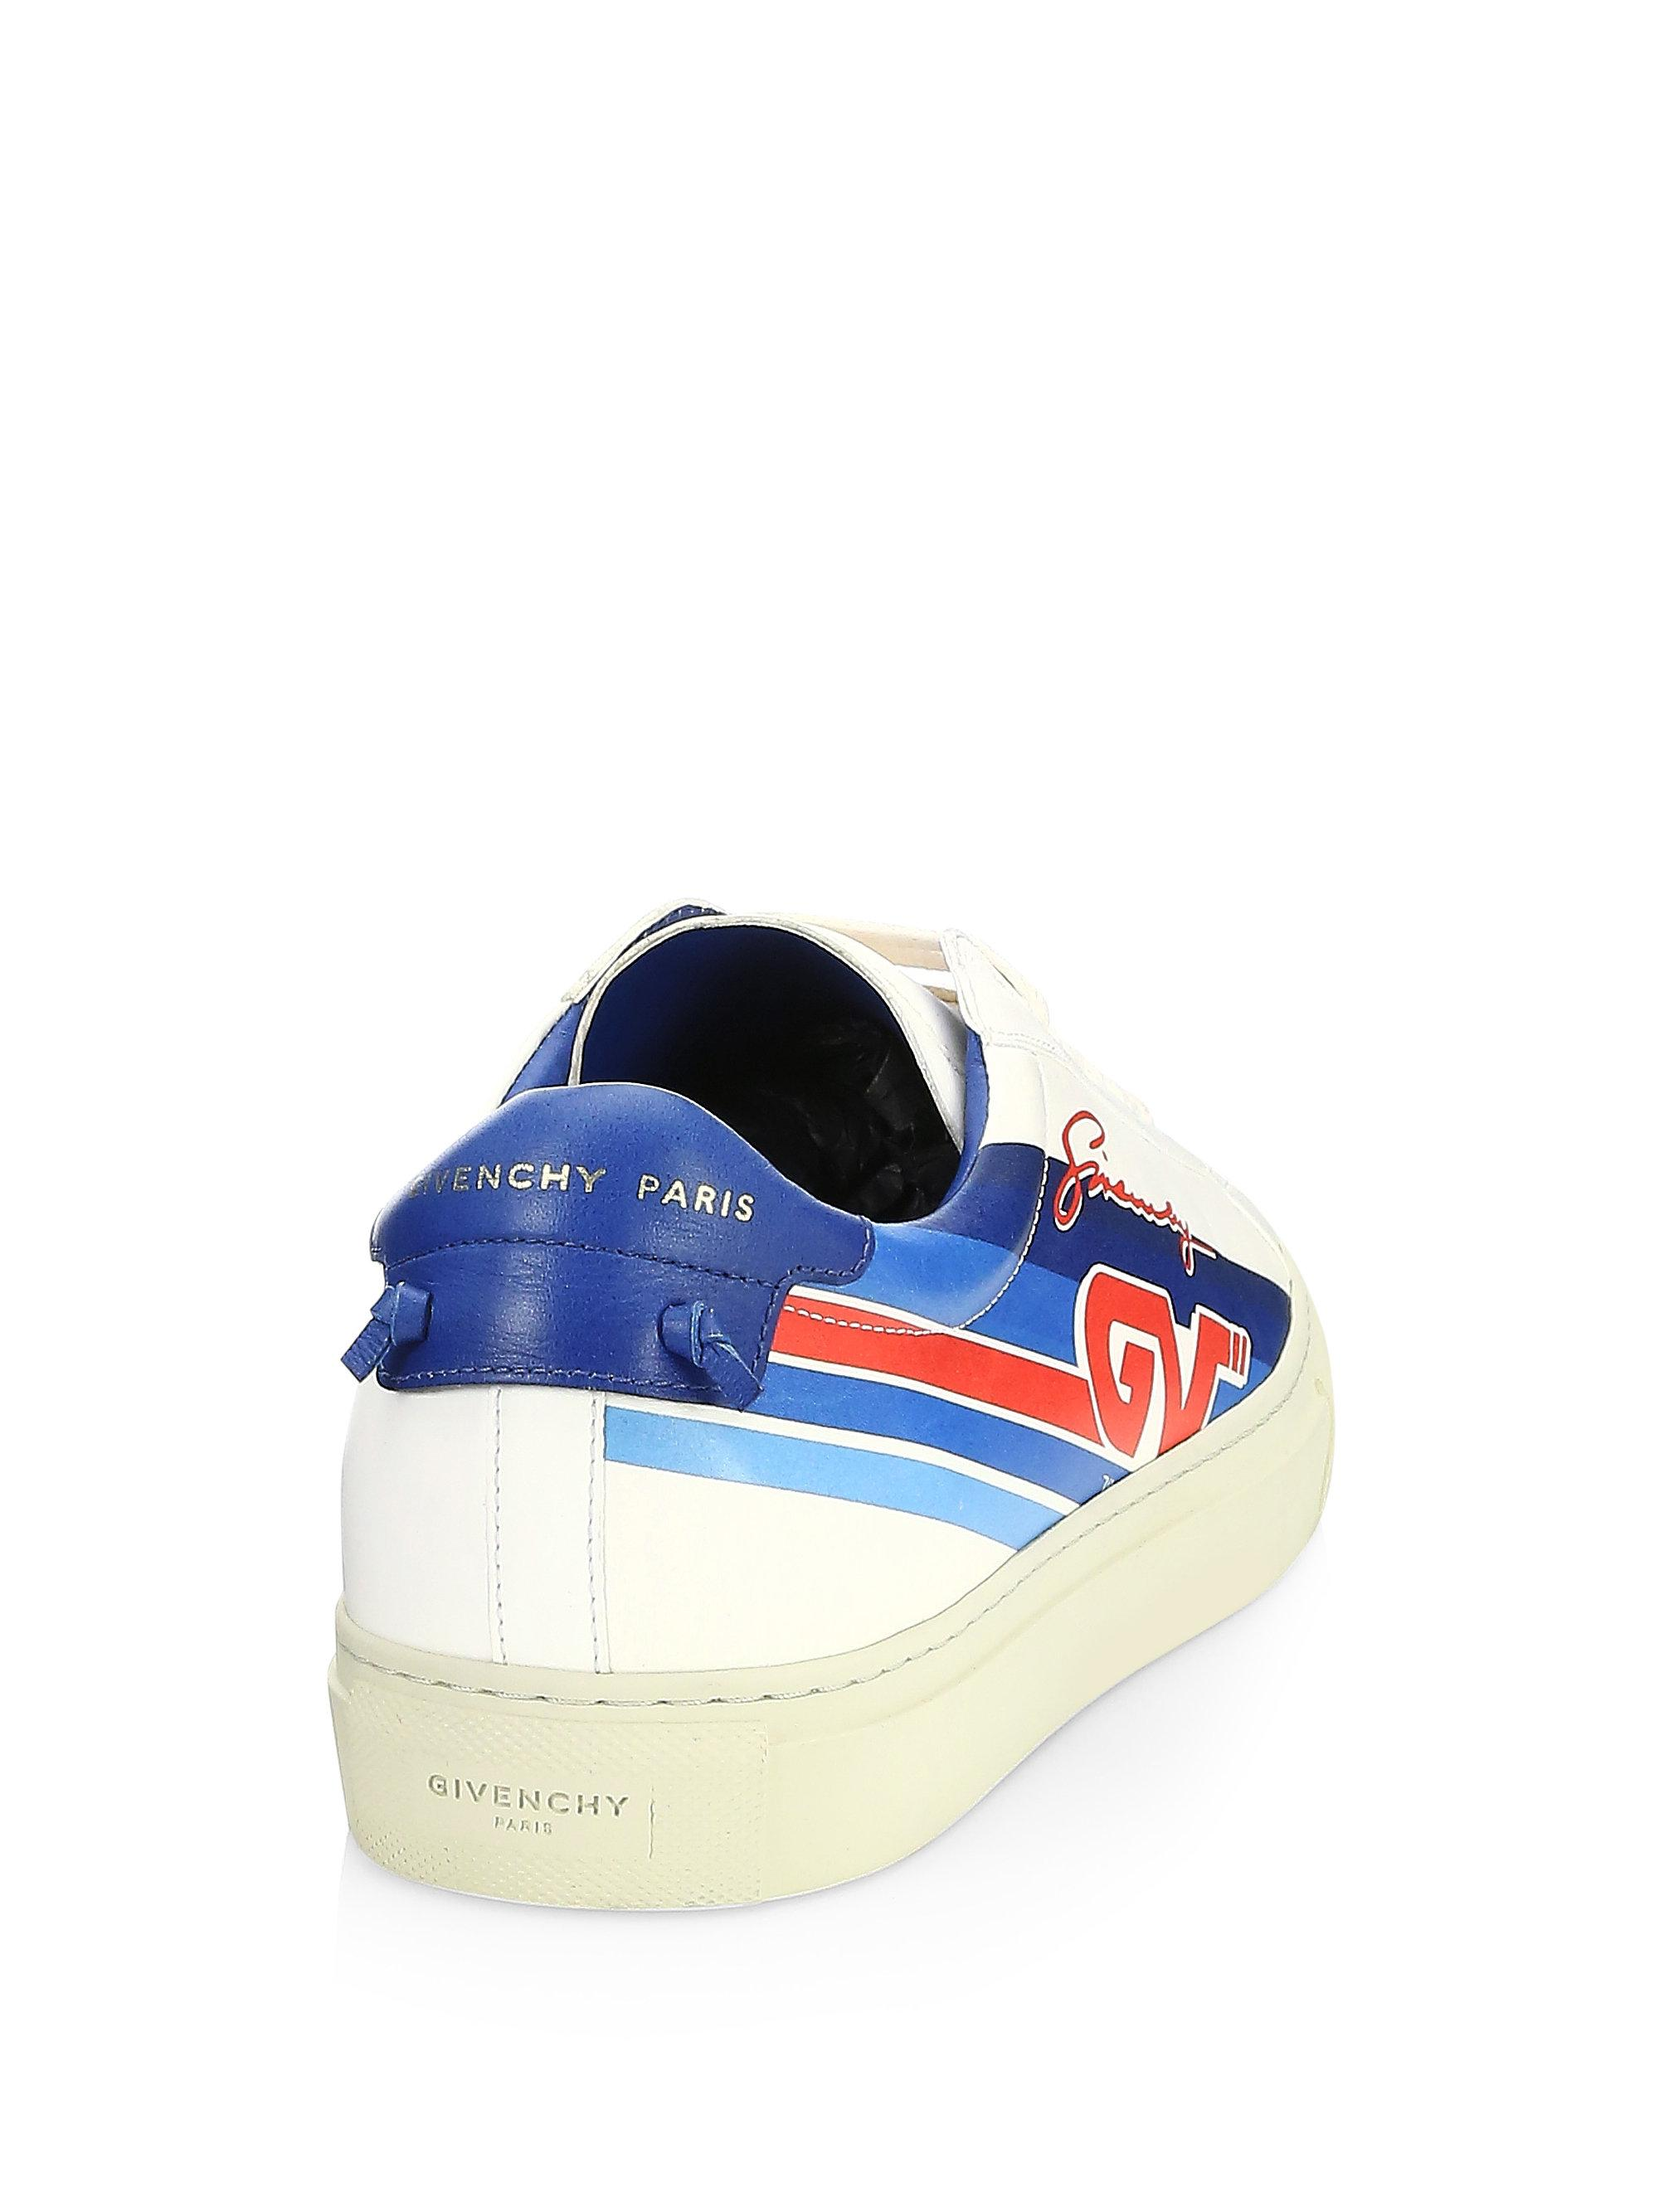 Givenchy Leather Urban Street Motocross